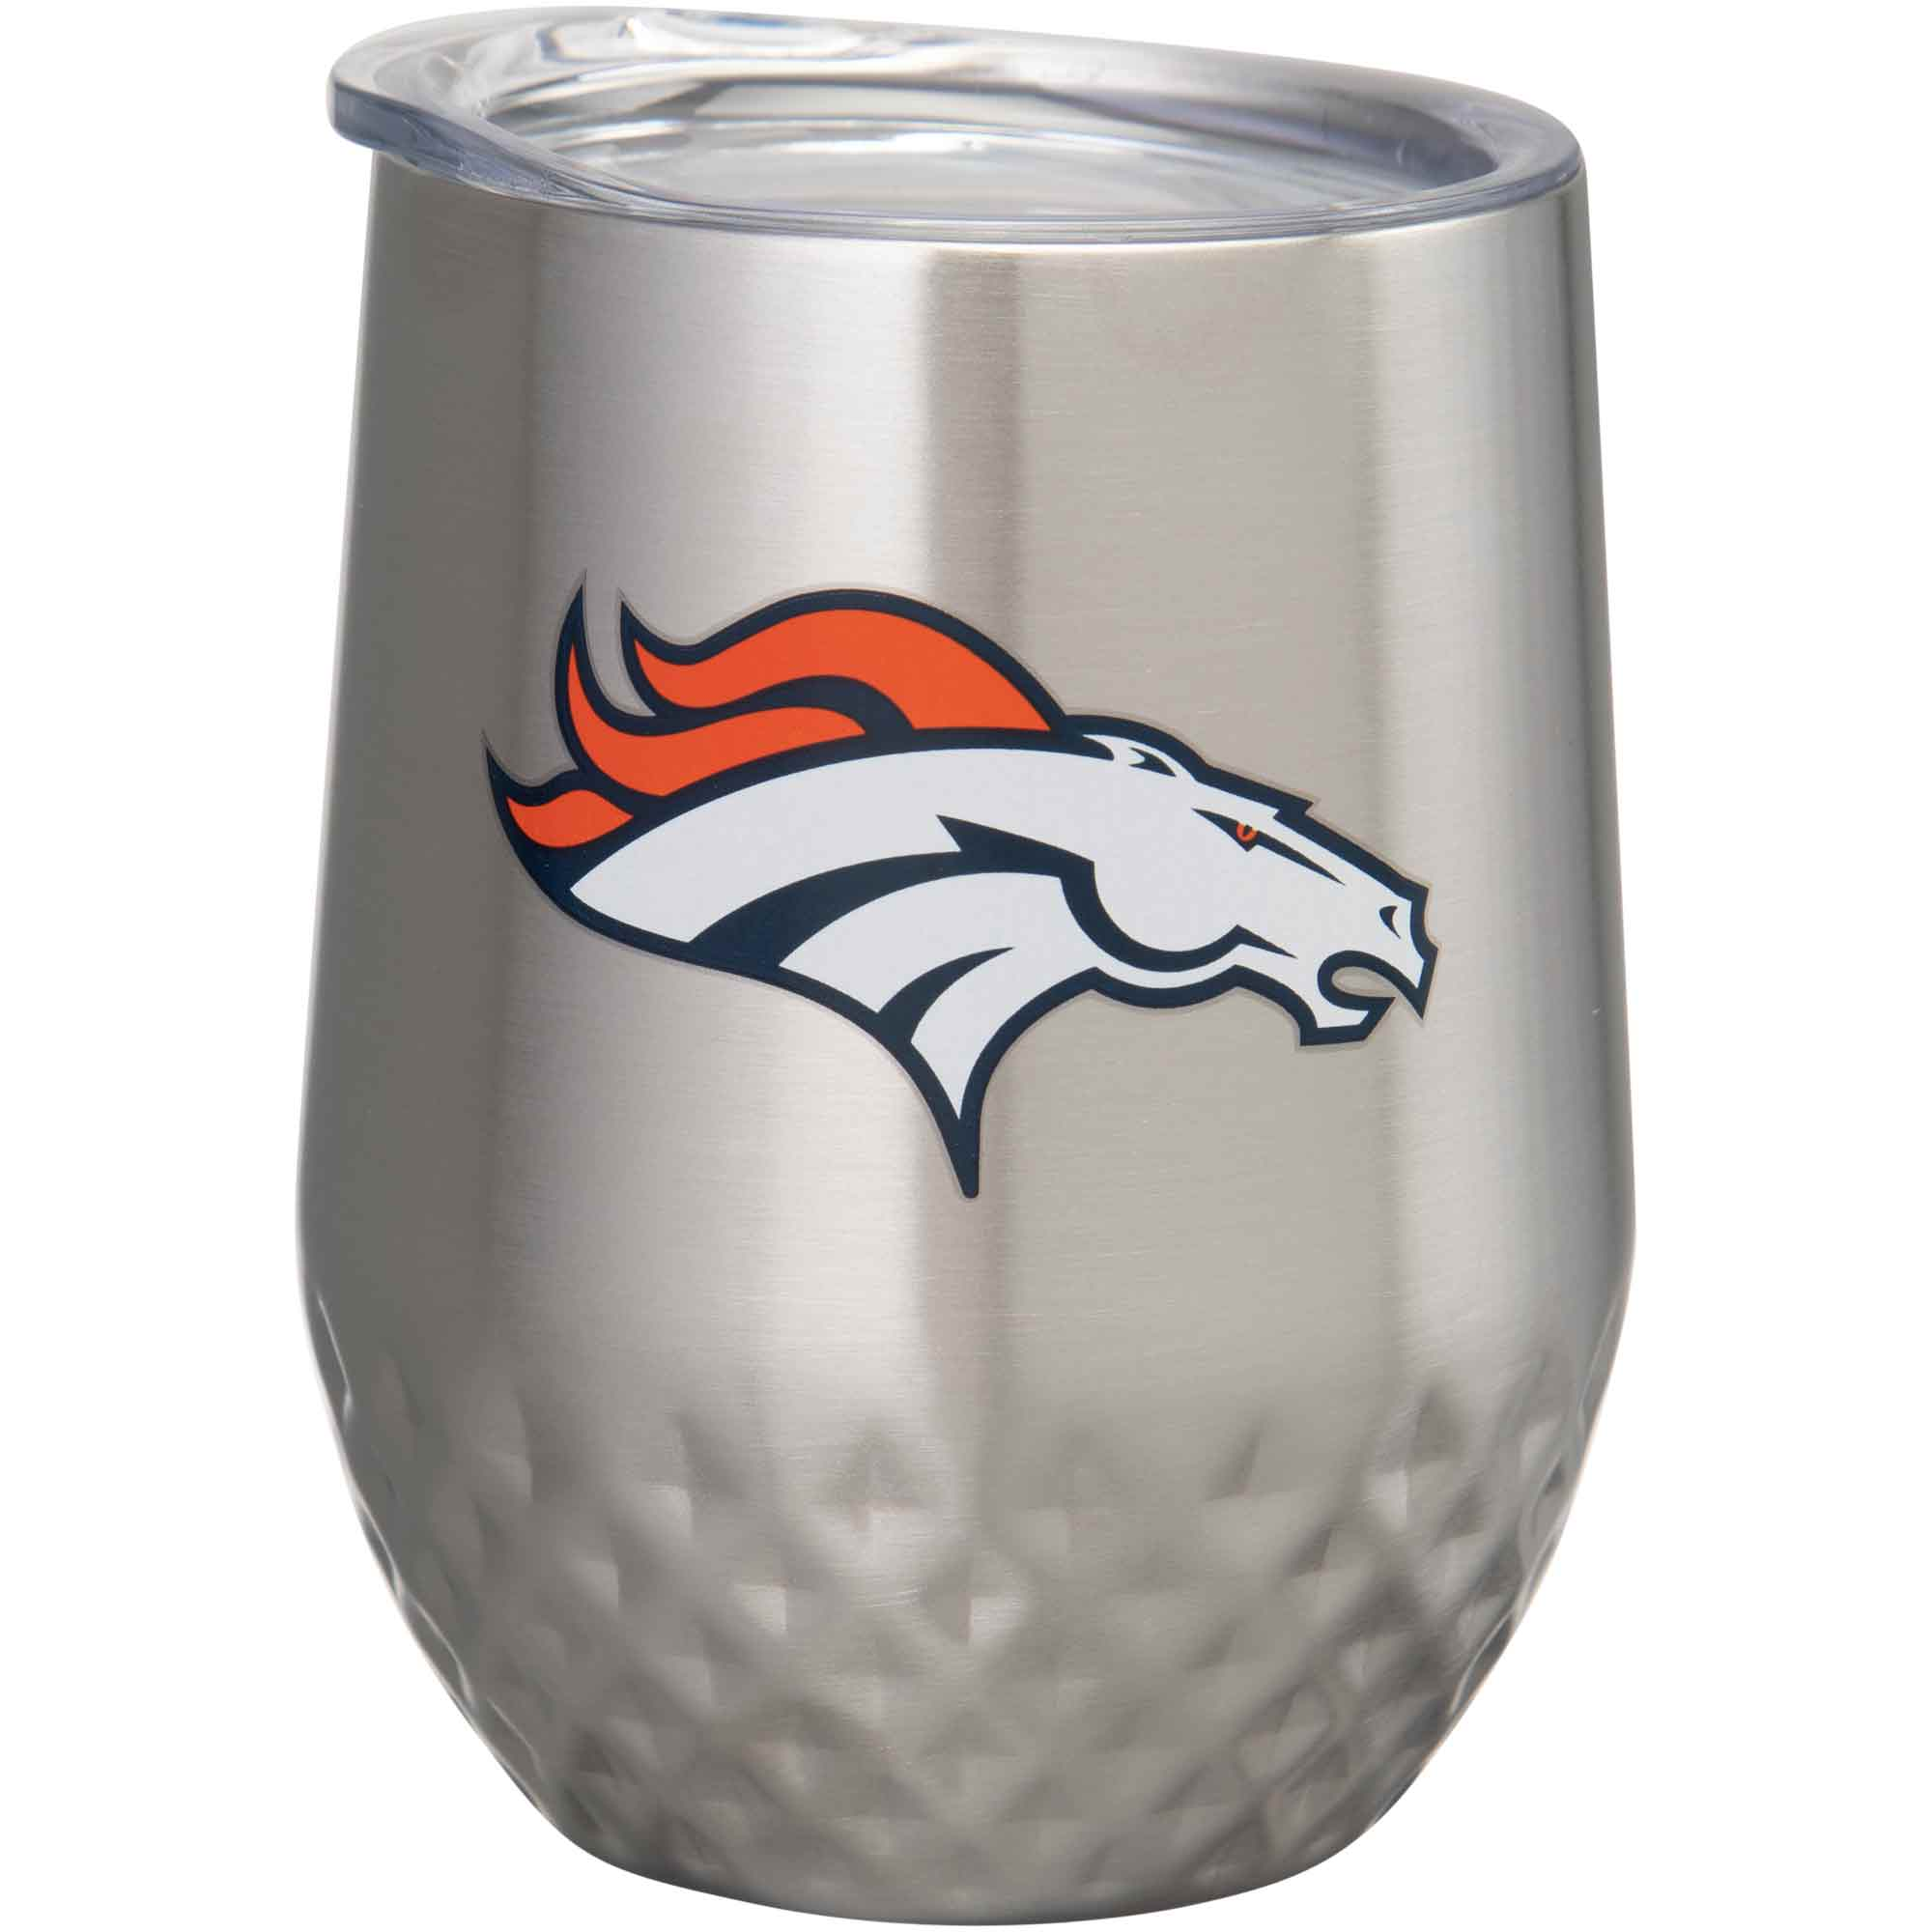 Denver Broncos 12oz. Stainless Steel Stemless Diamond Tumbler